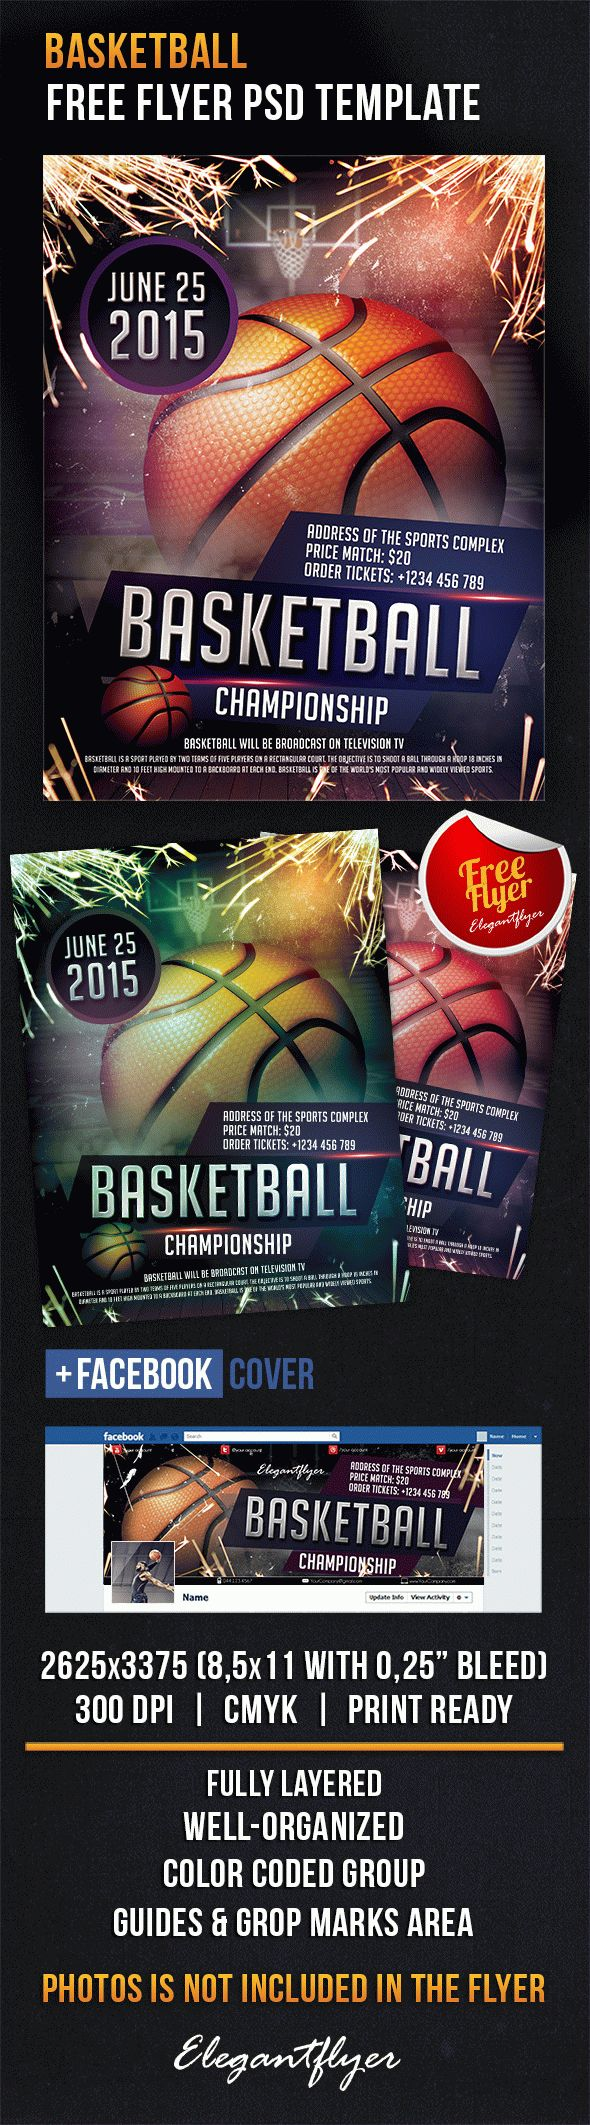 Basketball – Free Flyer PSD Template